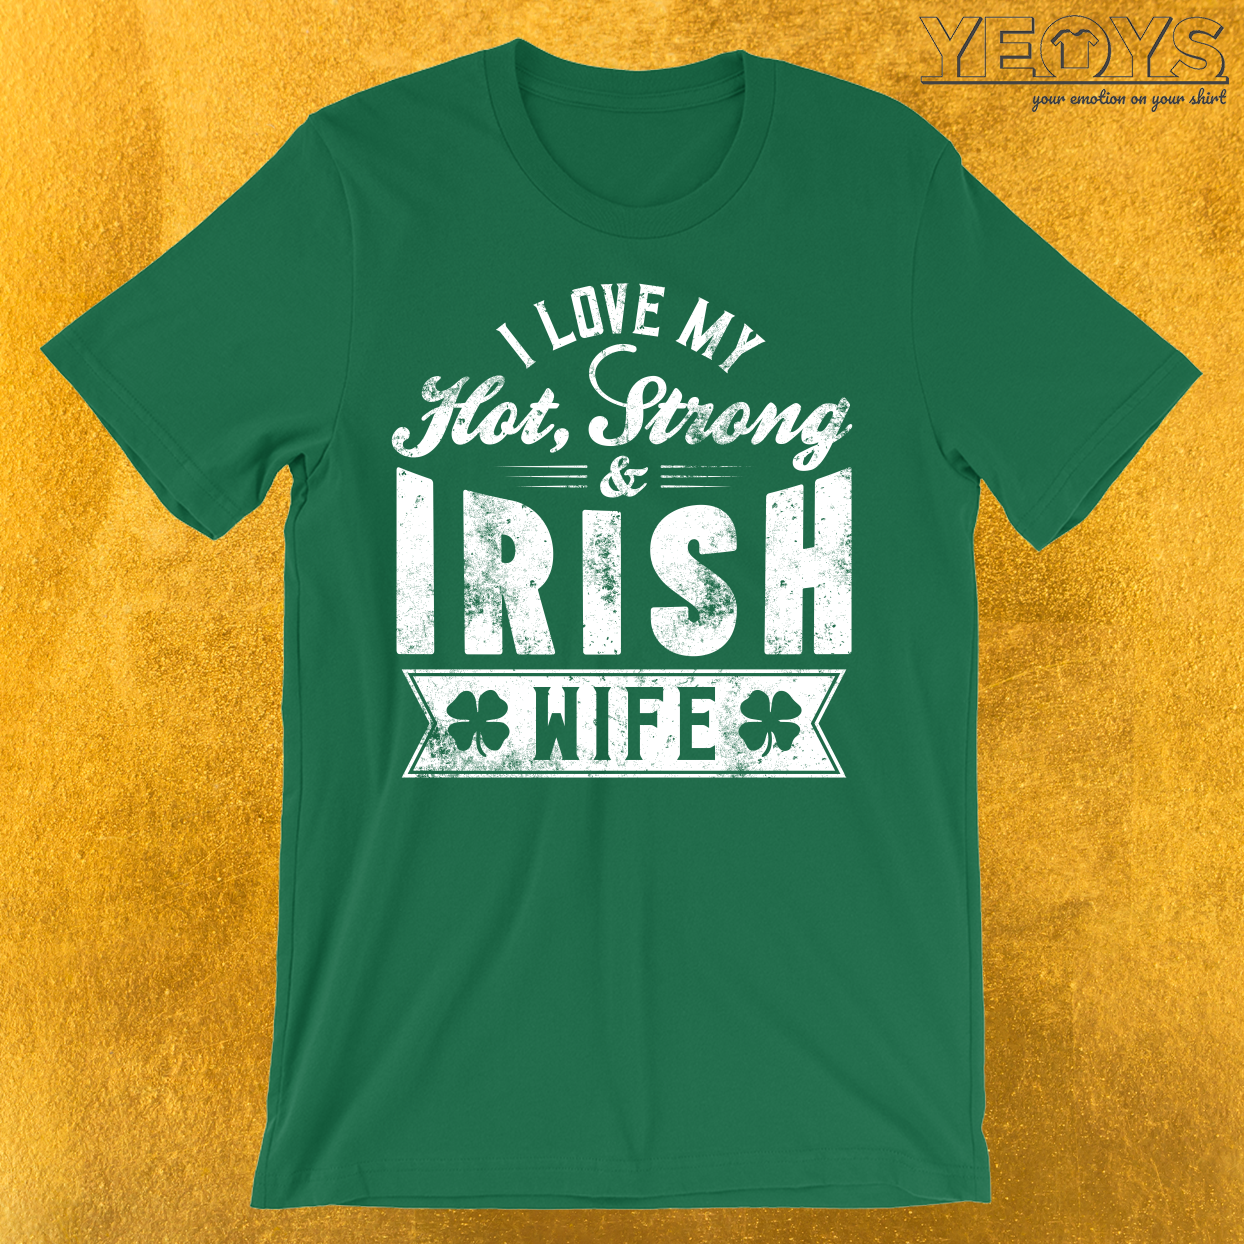 I Love My Hot Strong Irish Wife T-Shirt